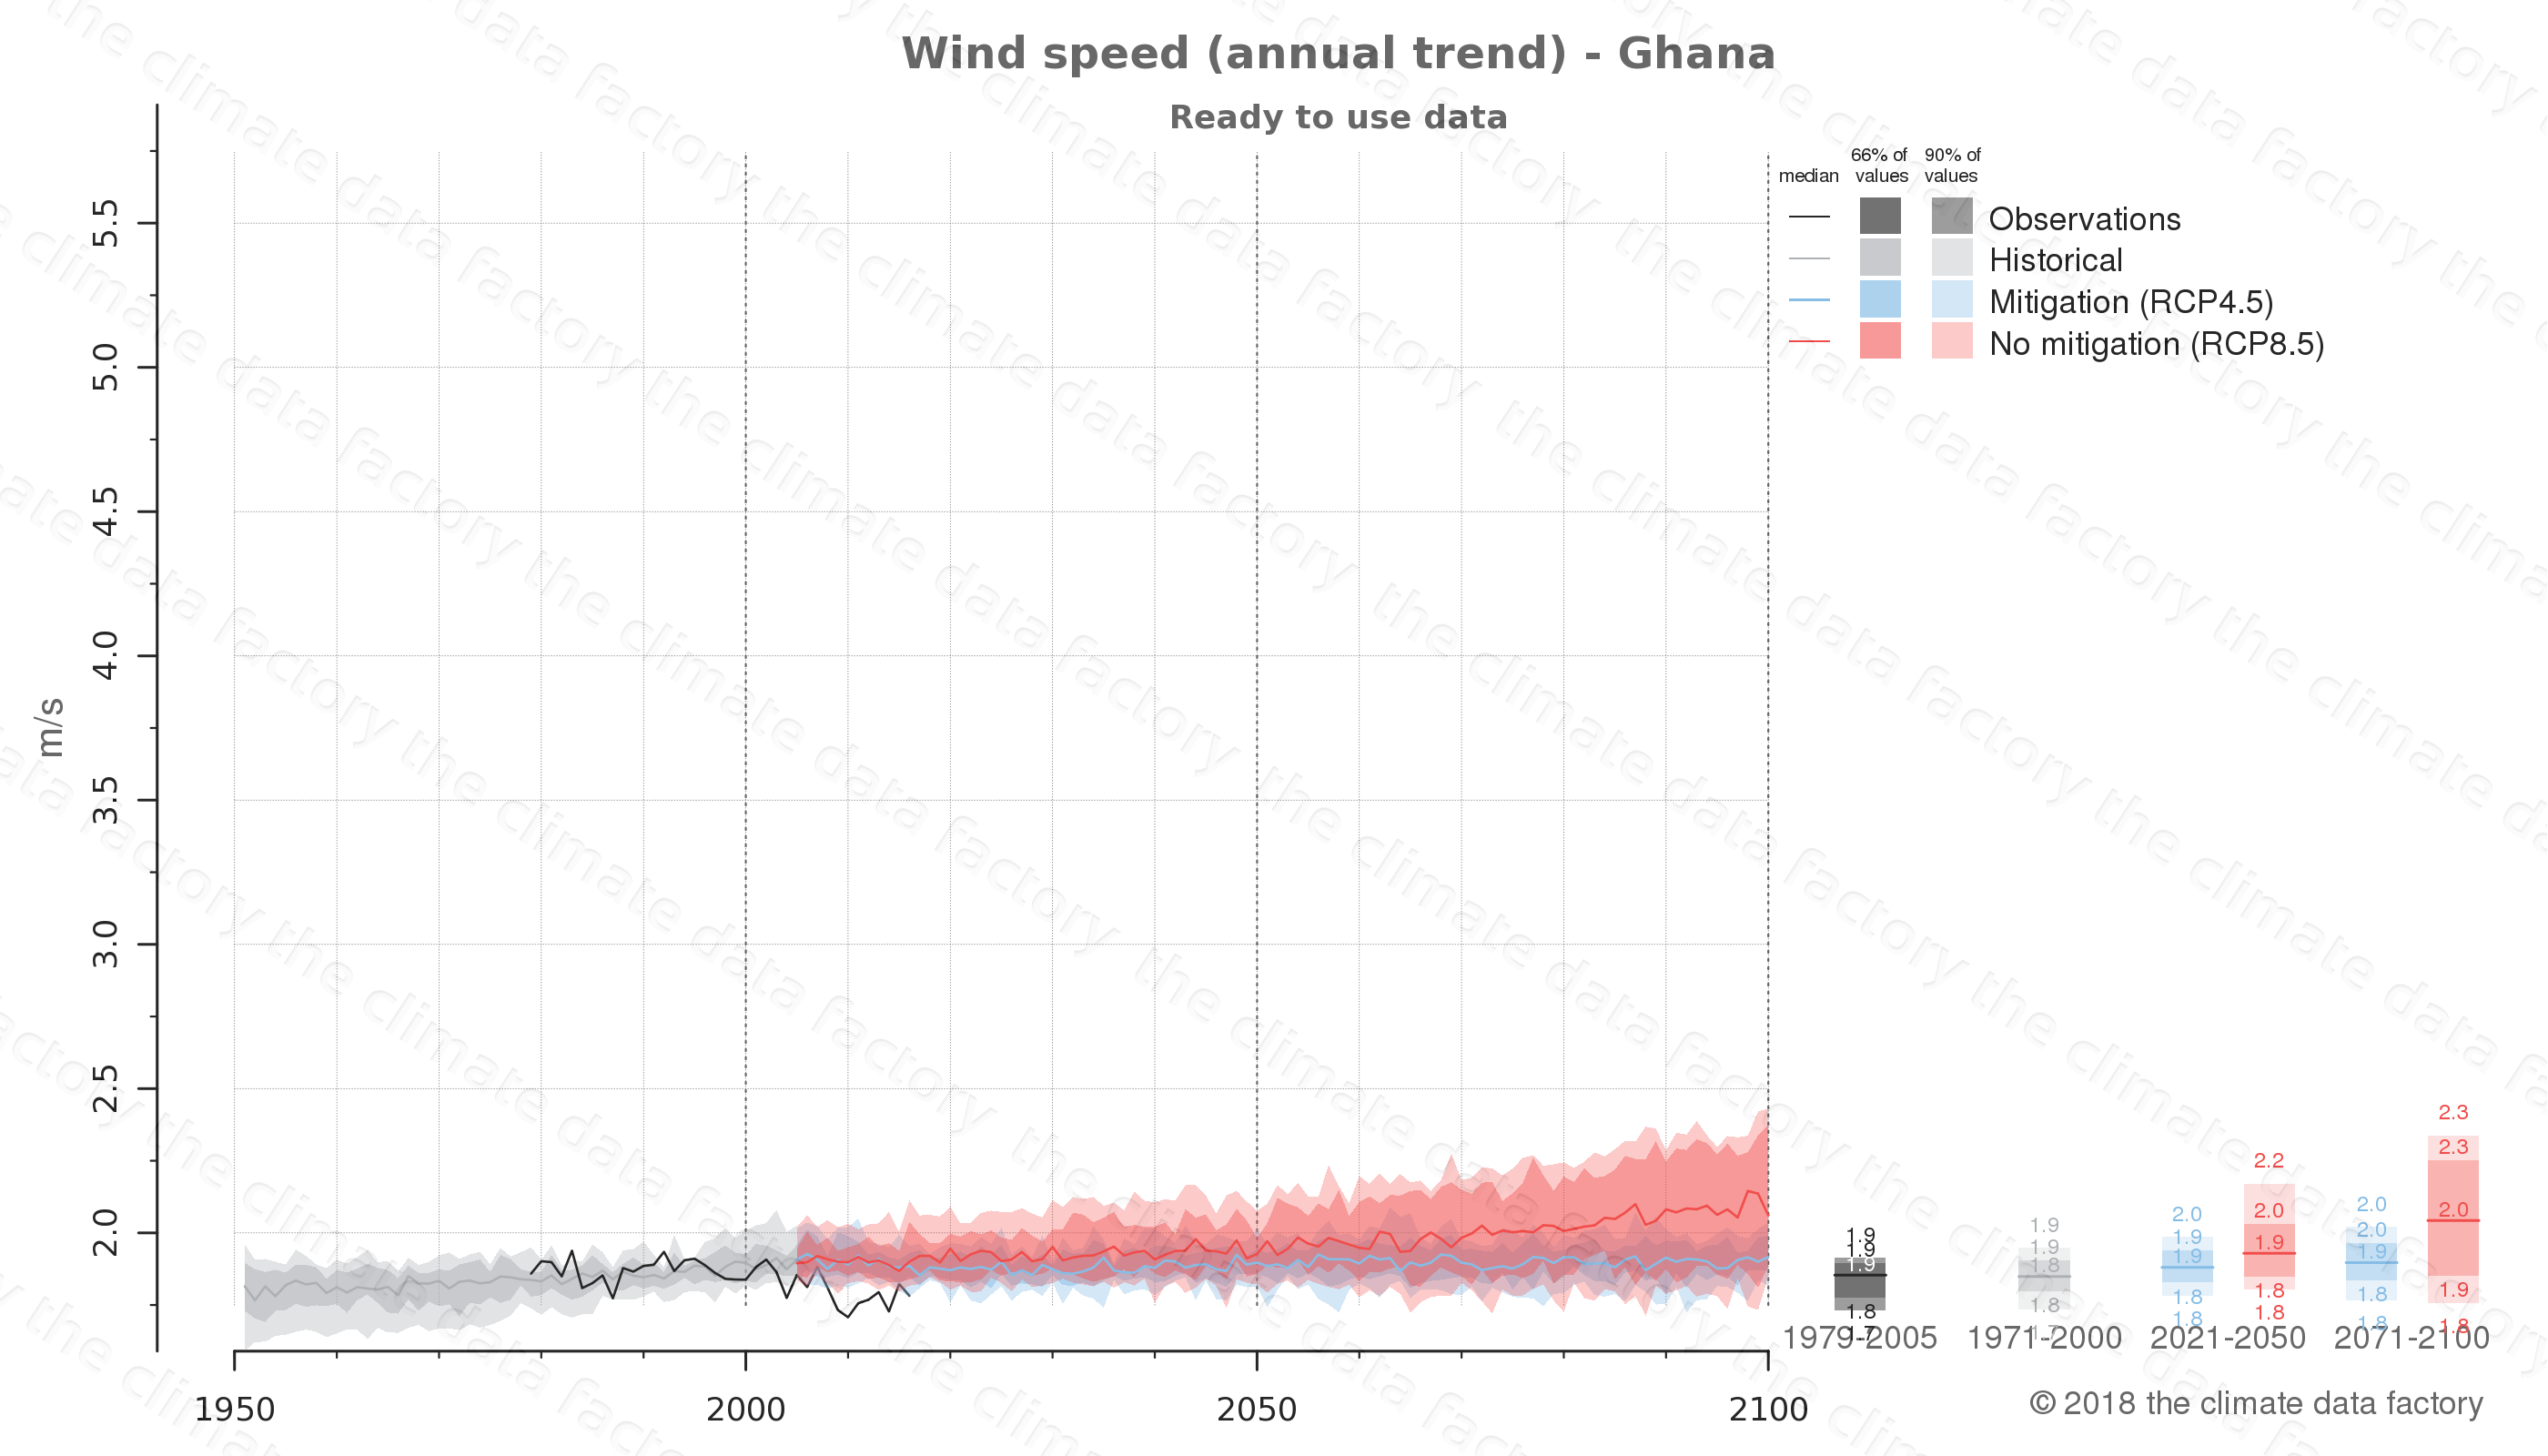 climate change data policy adaptation climate graph country data wind speed ghana africa